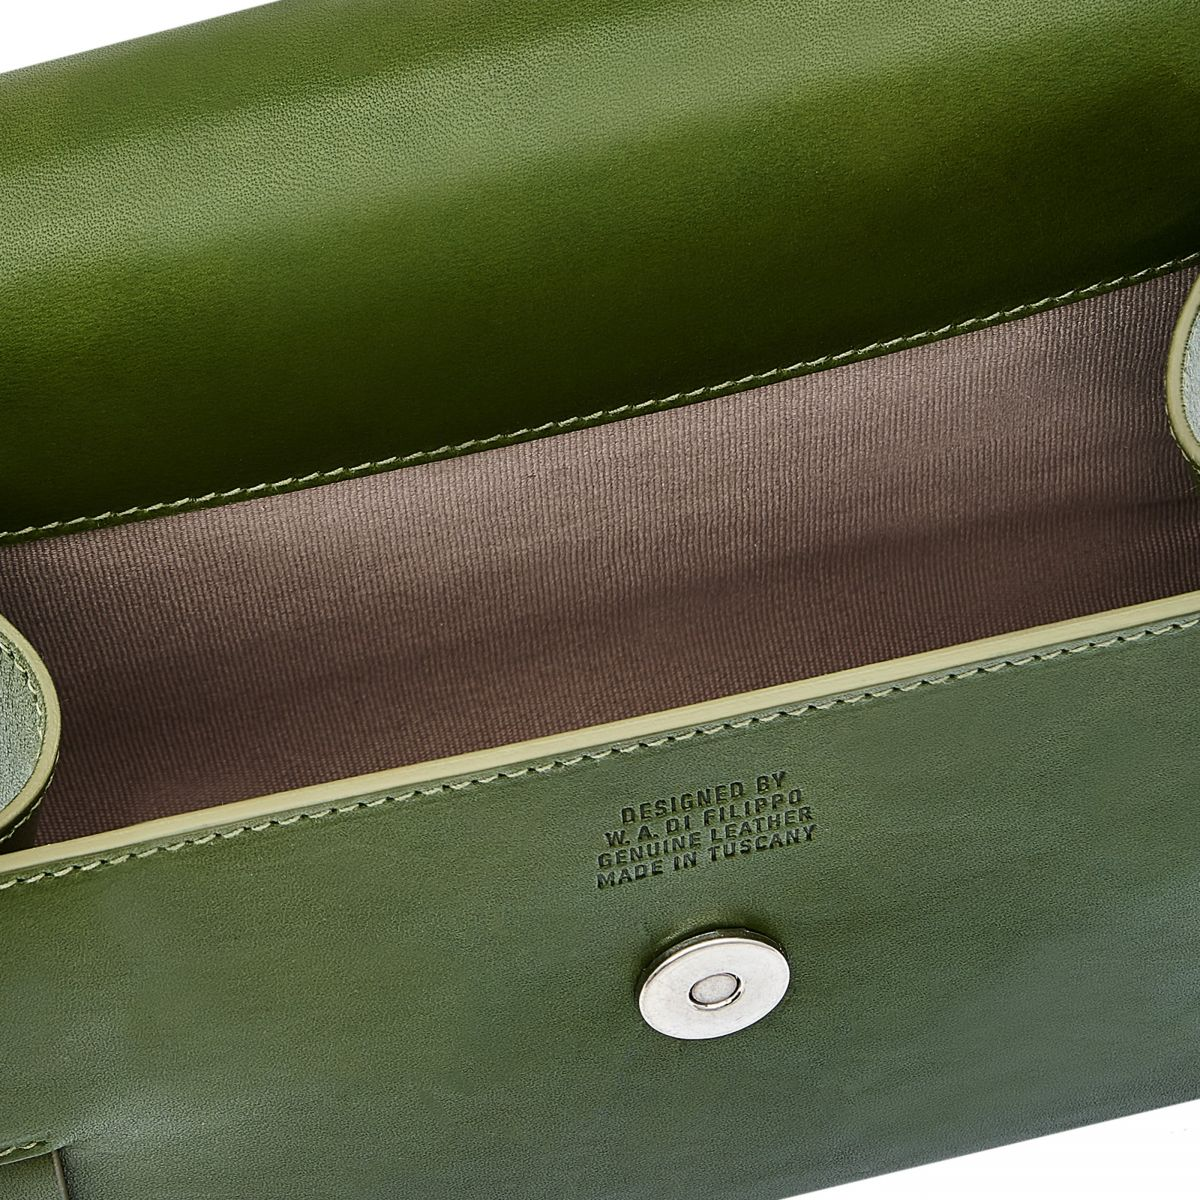 Stufa - Women's Crossbody Bag in Cowhide Leather color Green - Fifty On line BCR223 | Details